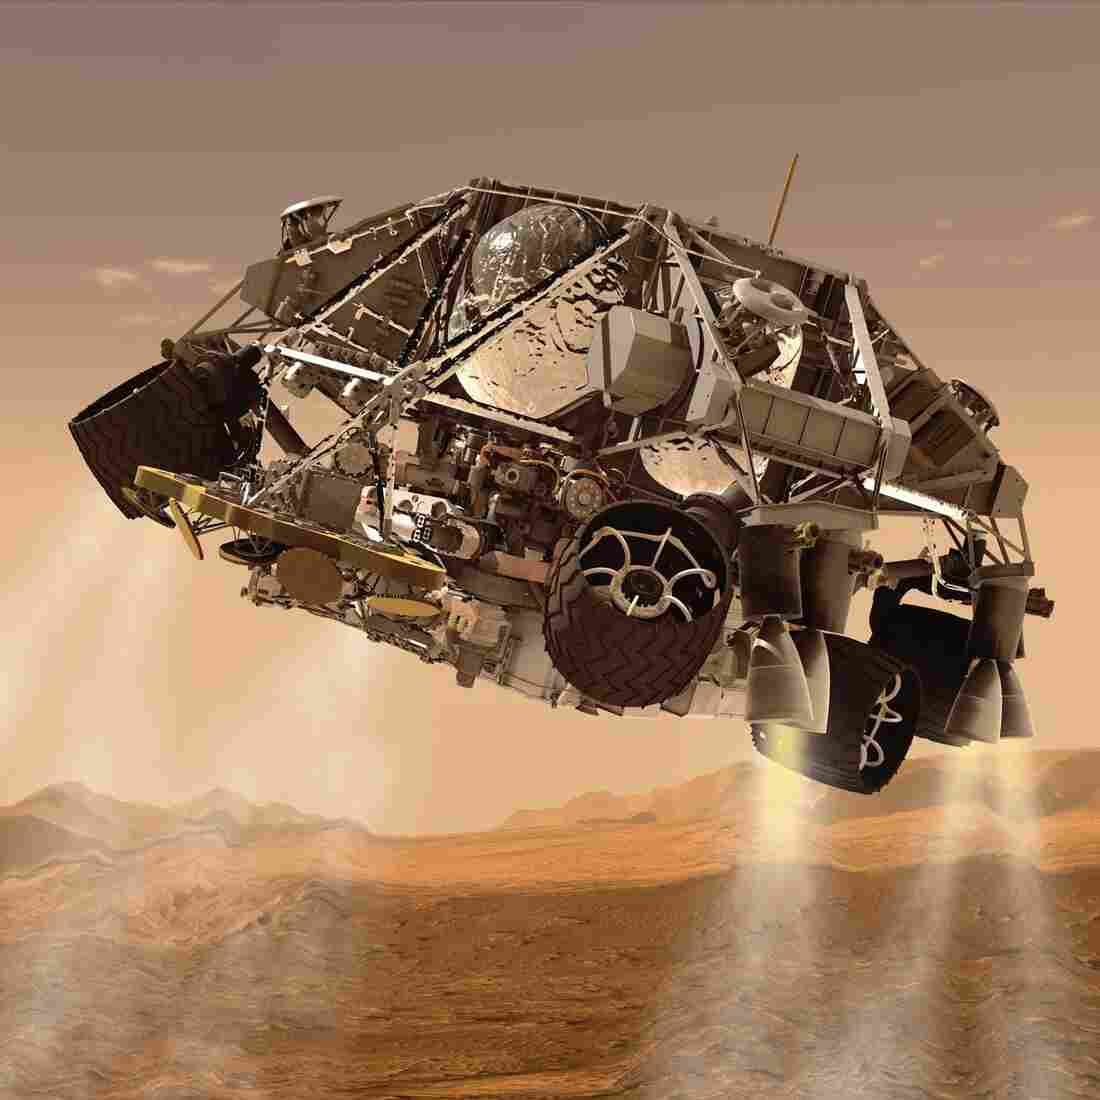 Waiting For A Sign: Mars Rover To Land On Its Own